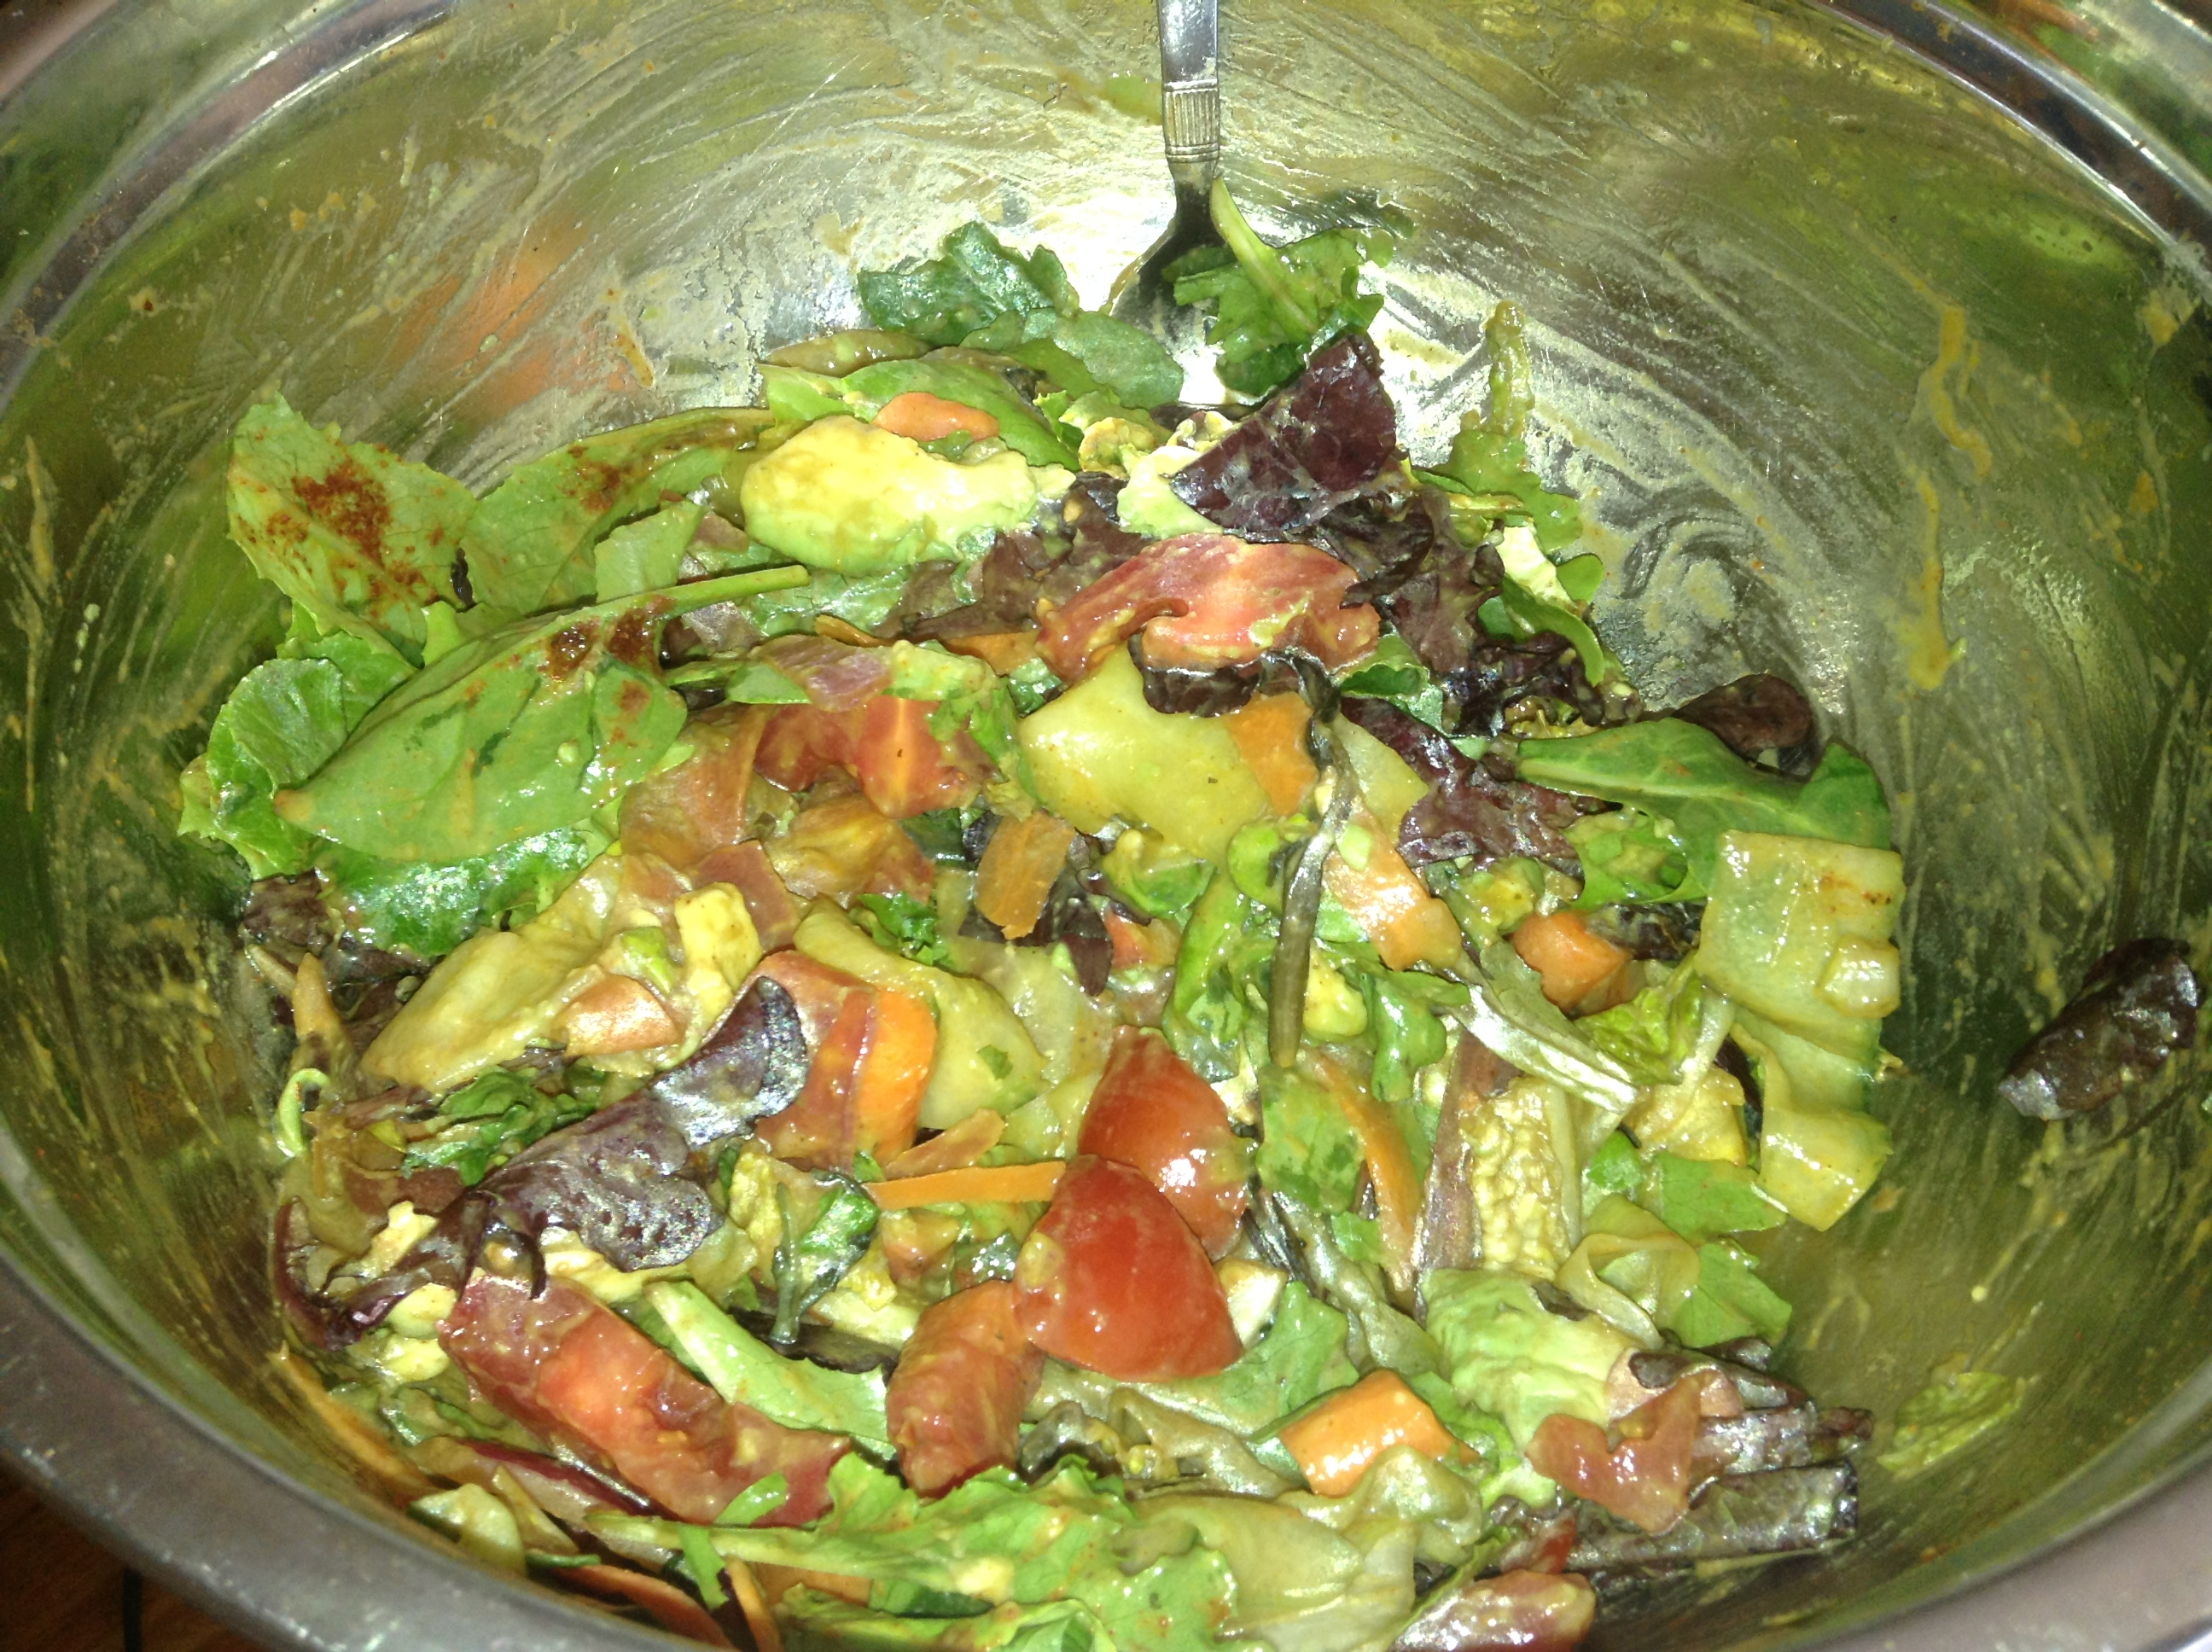 Raw vegan pizza salad recipe raw vegan living blog raw vegan living foods is life raw plant foods is power eating live foods makes you feel alive who wouldnt want to look and feel amazing day in and day forumfinder Image collections